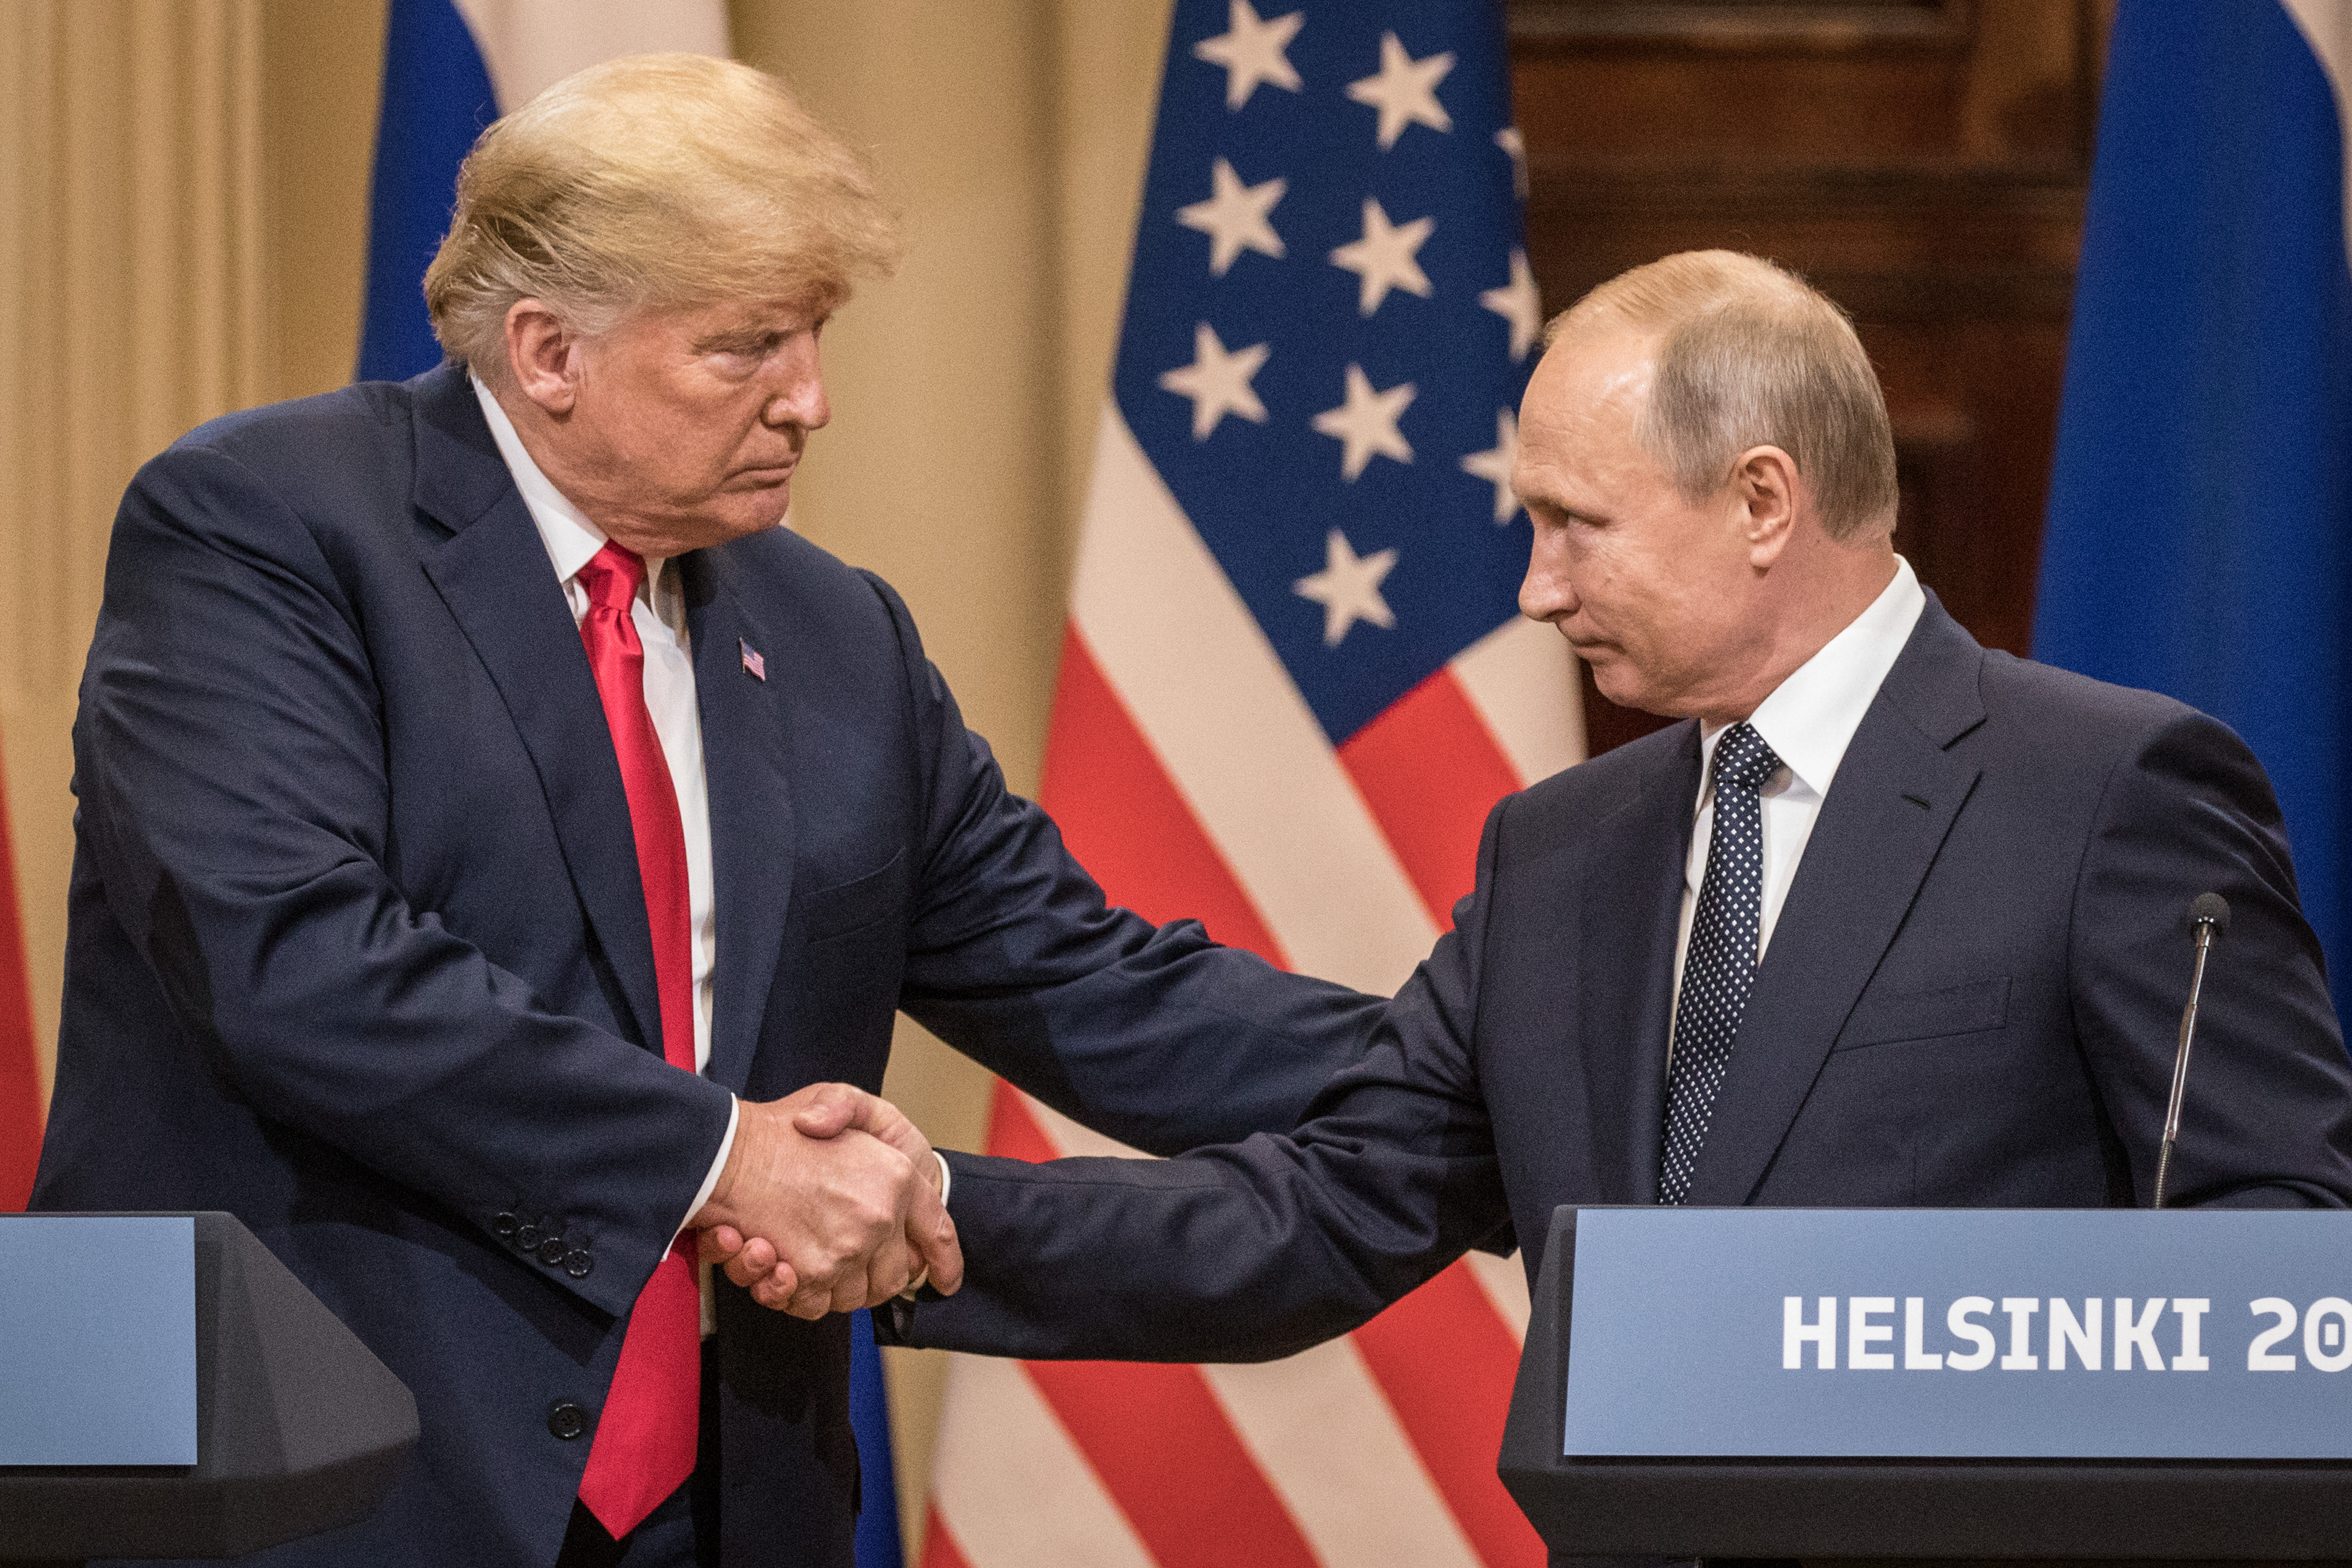 President Trump And President Putin Hold A Joint Press Conference After Summit.